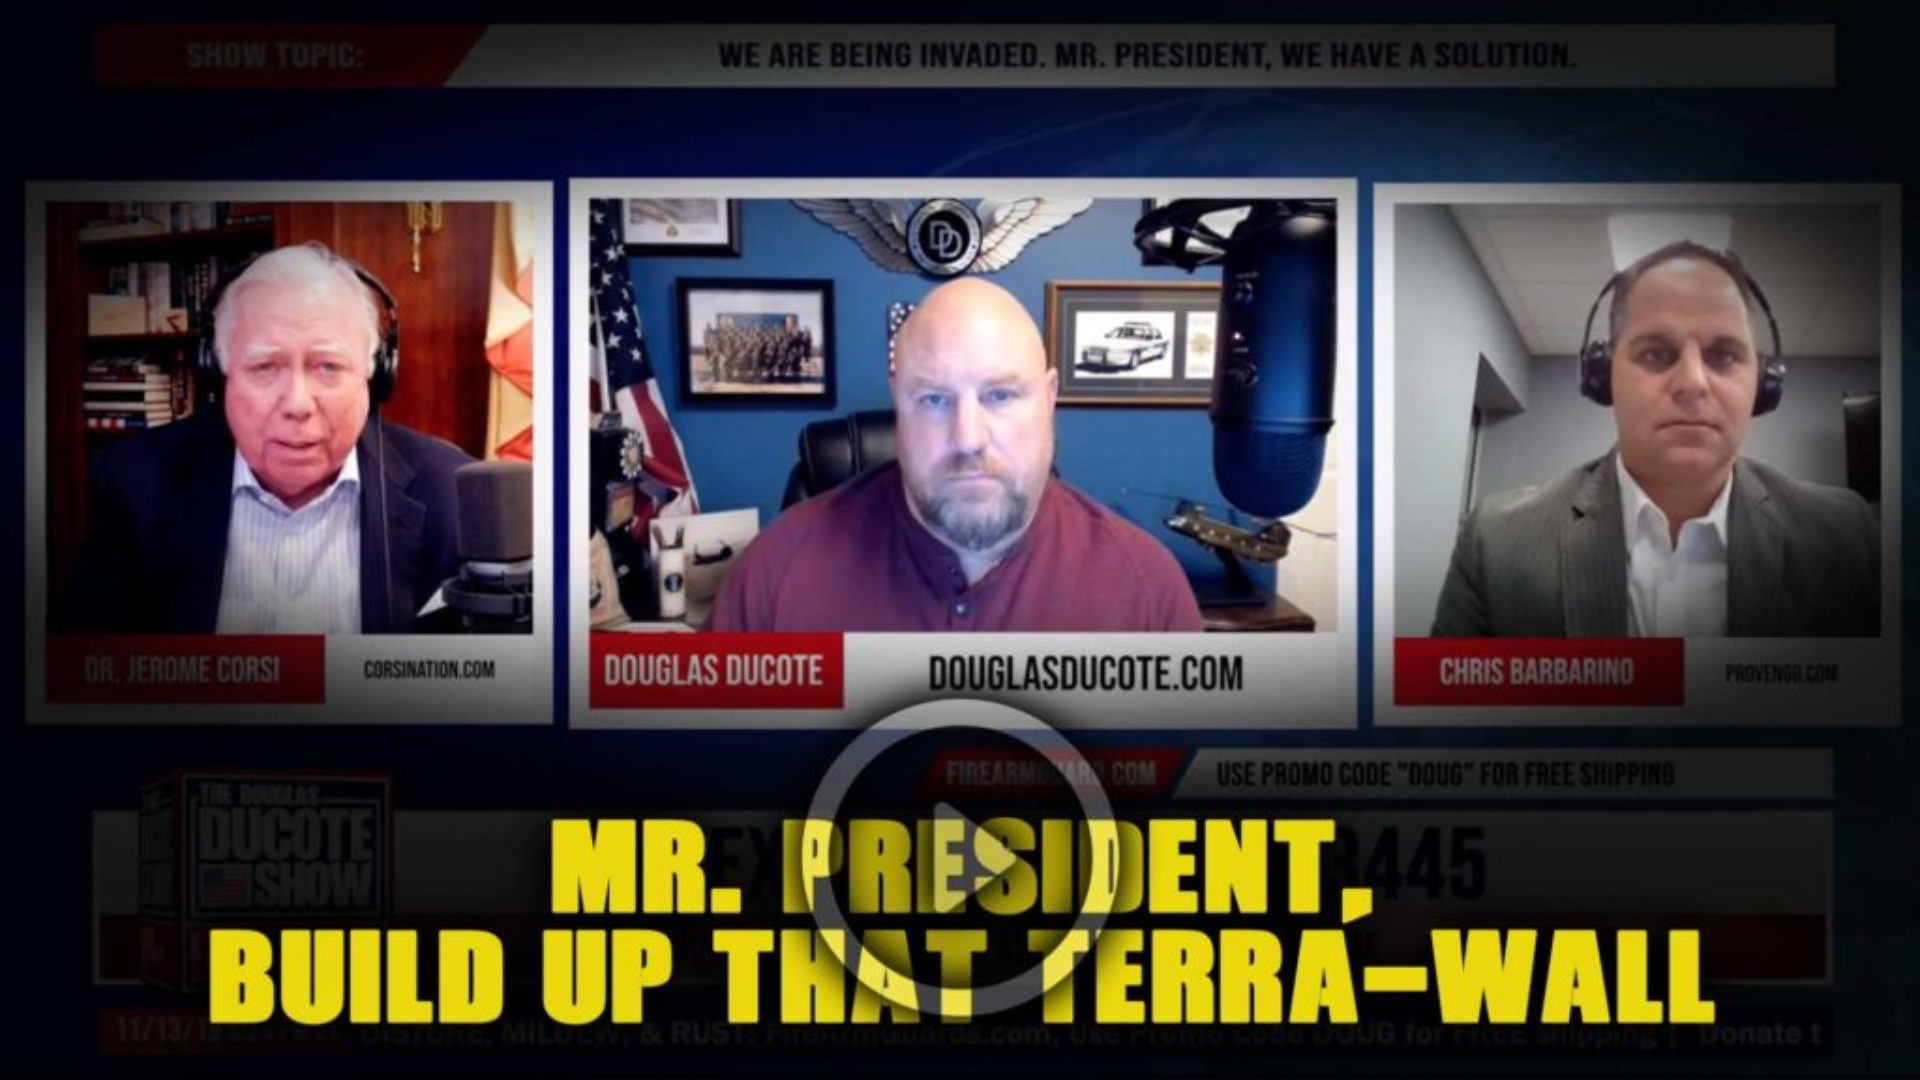 Mr-President-Build-Up-That-Terra-Wall-2